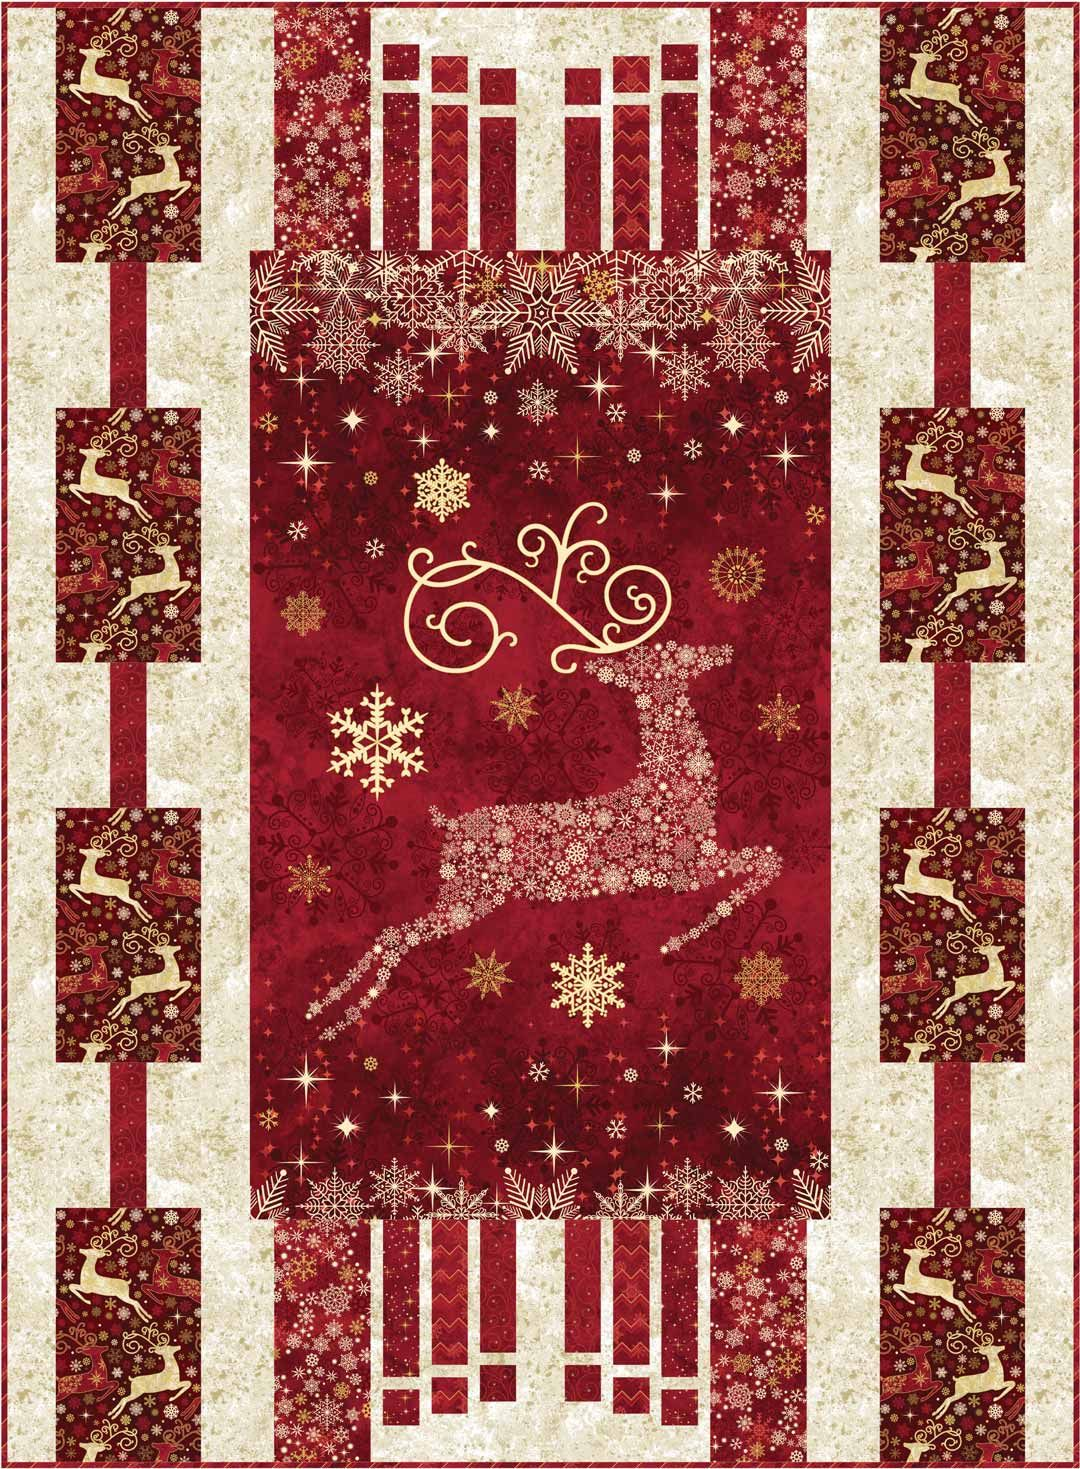 Dazzle Christmas panel quilt pattern with three border designs by ... : quilts by jen - Adamdwight.com